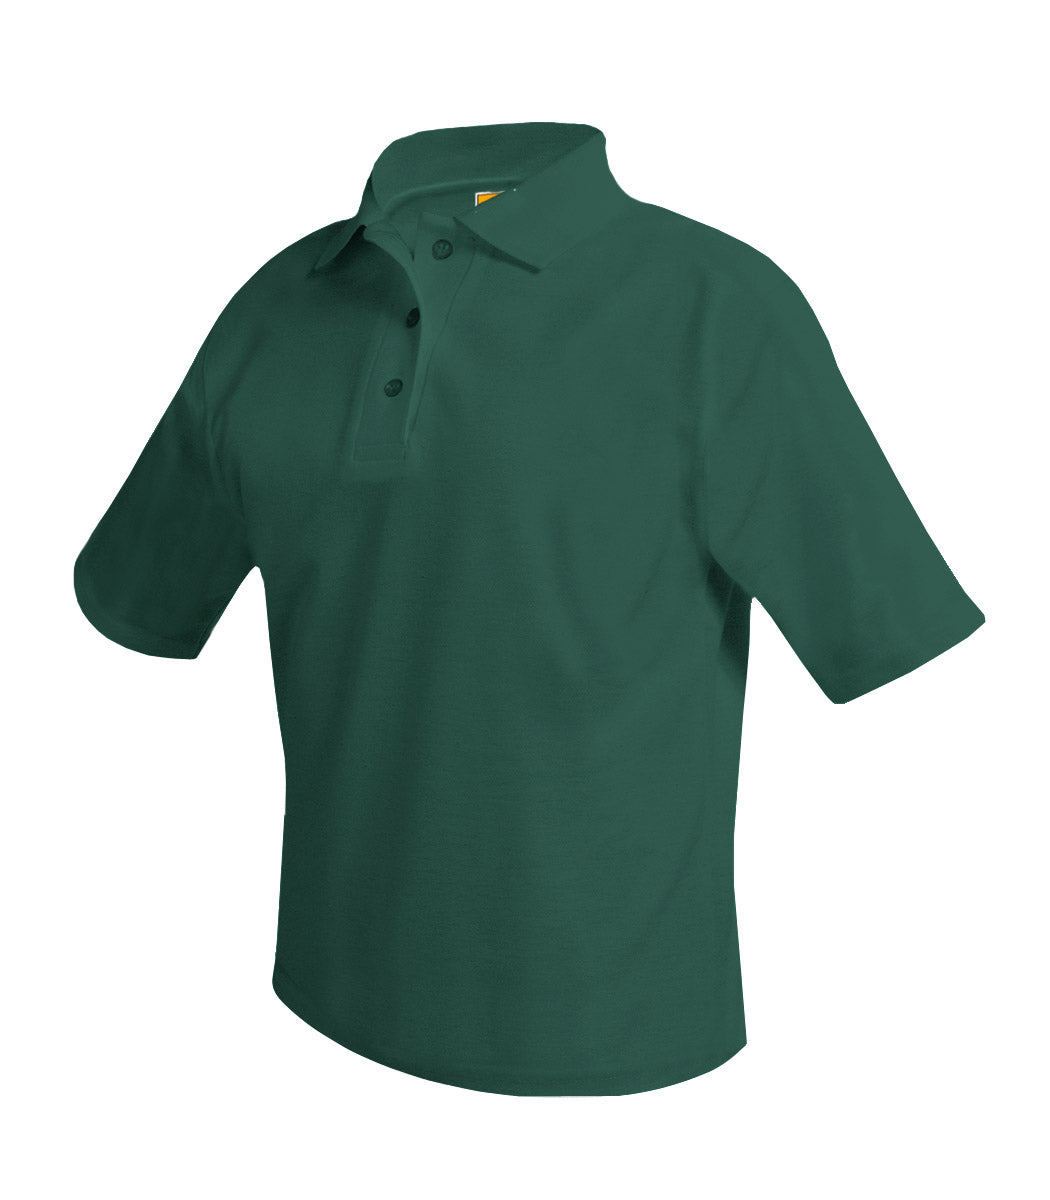 St. Barnabas Short Sleeve Polo Shirt Green